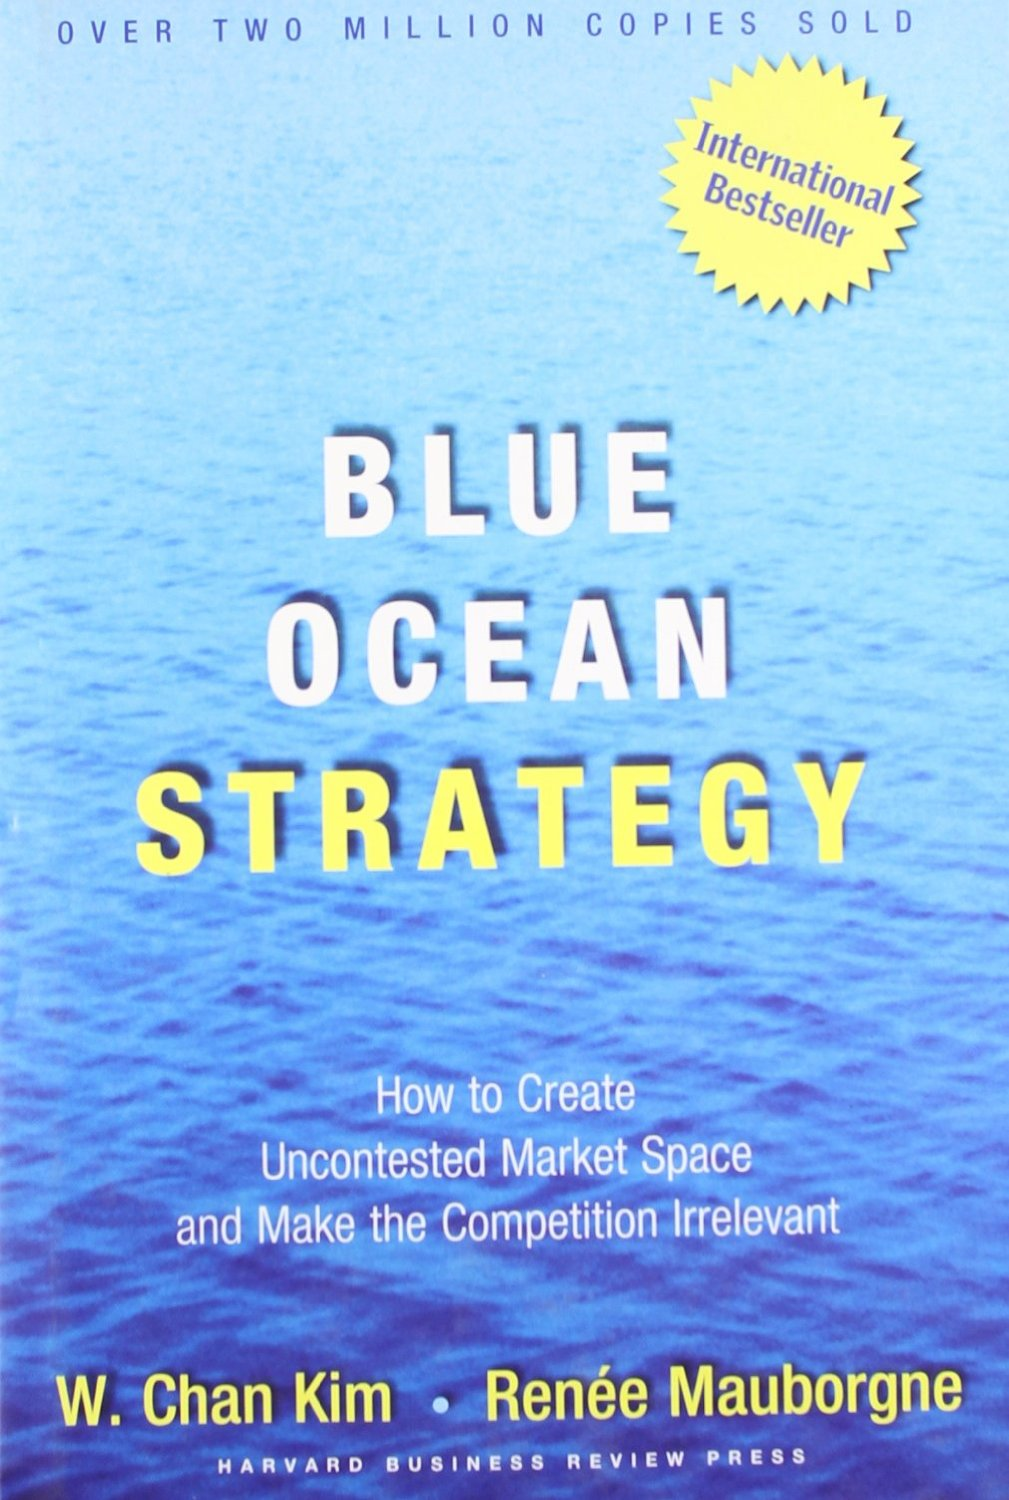 a review of the book blue ocean strategy how to create uncontested market space and make competition The global phenomenon that has sold 35 million copies, is published in a record-breaking 43 languages and is a bestseller across five continents—now updated and expanded with new - selection from blue ocean strategy, expanded edition: how to create uncontested market space and make the competition irrelevant [book.